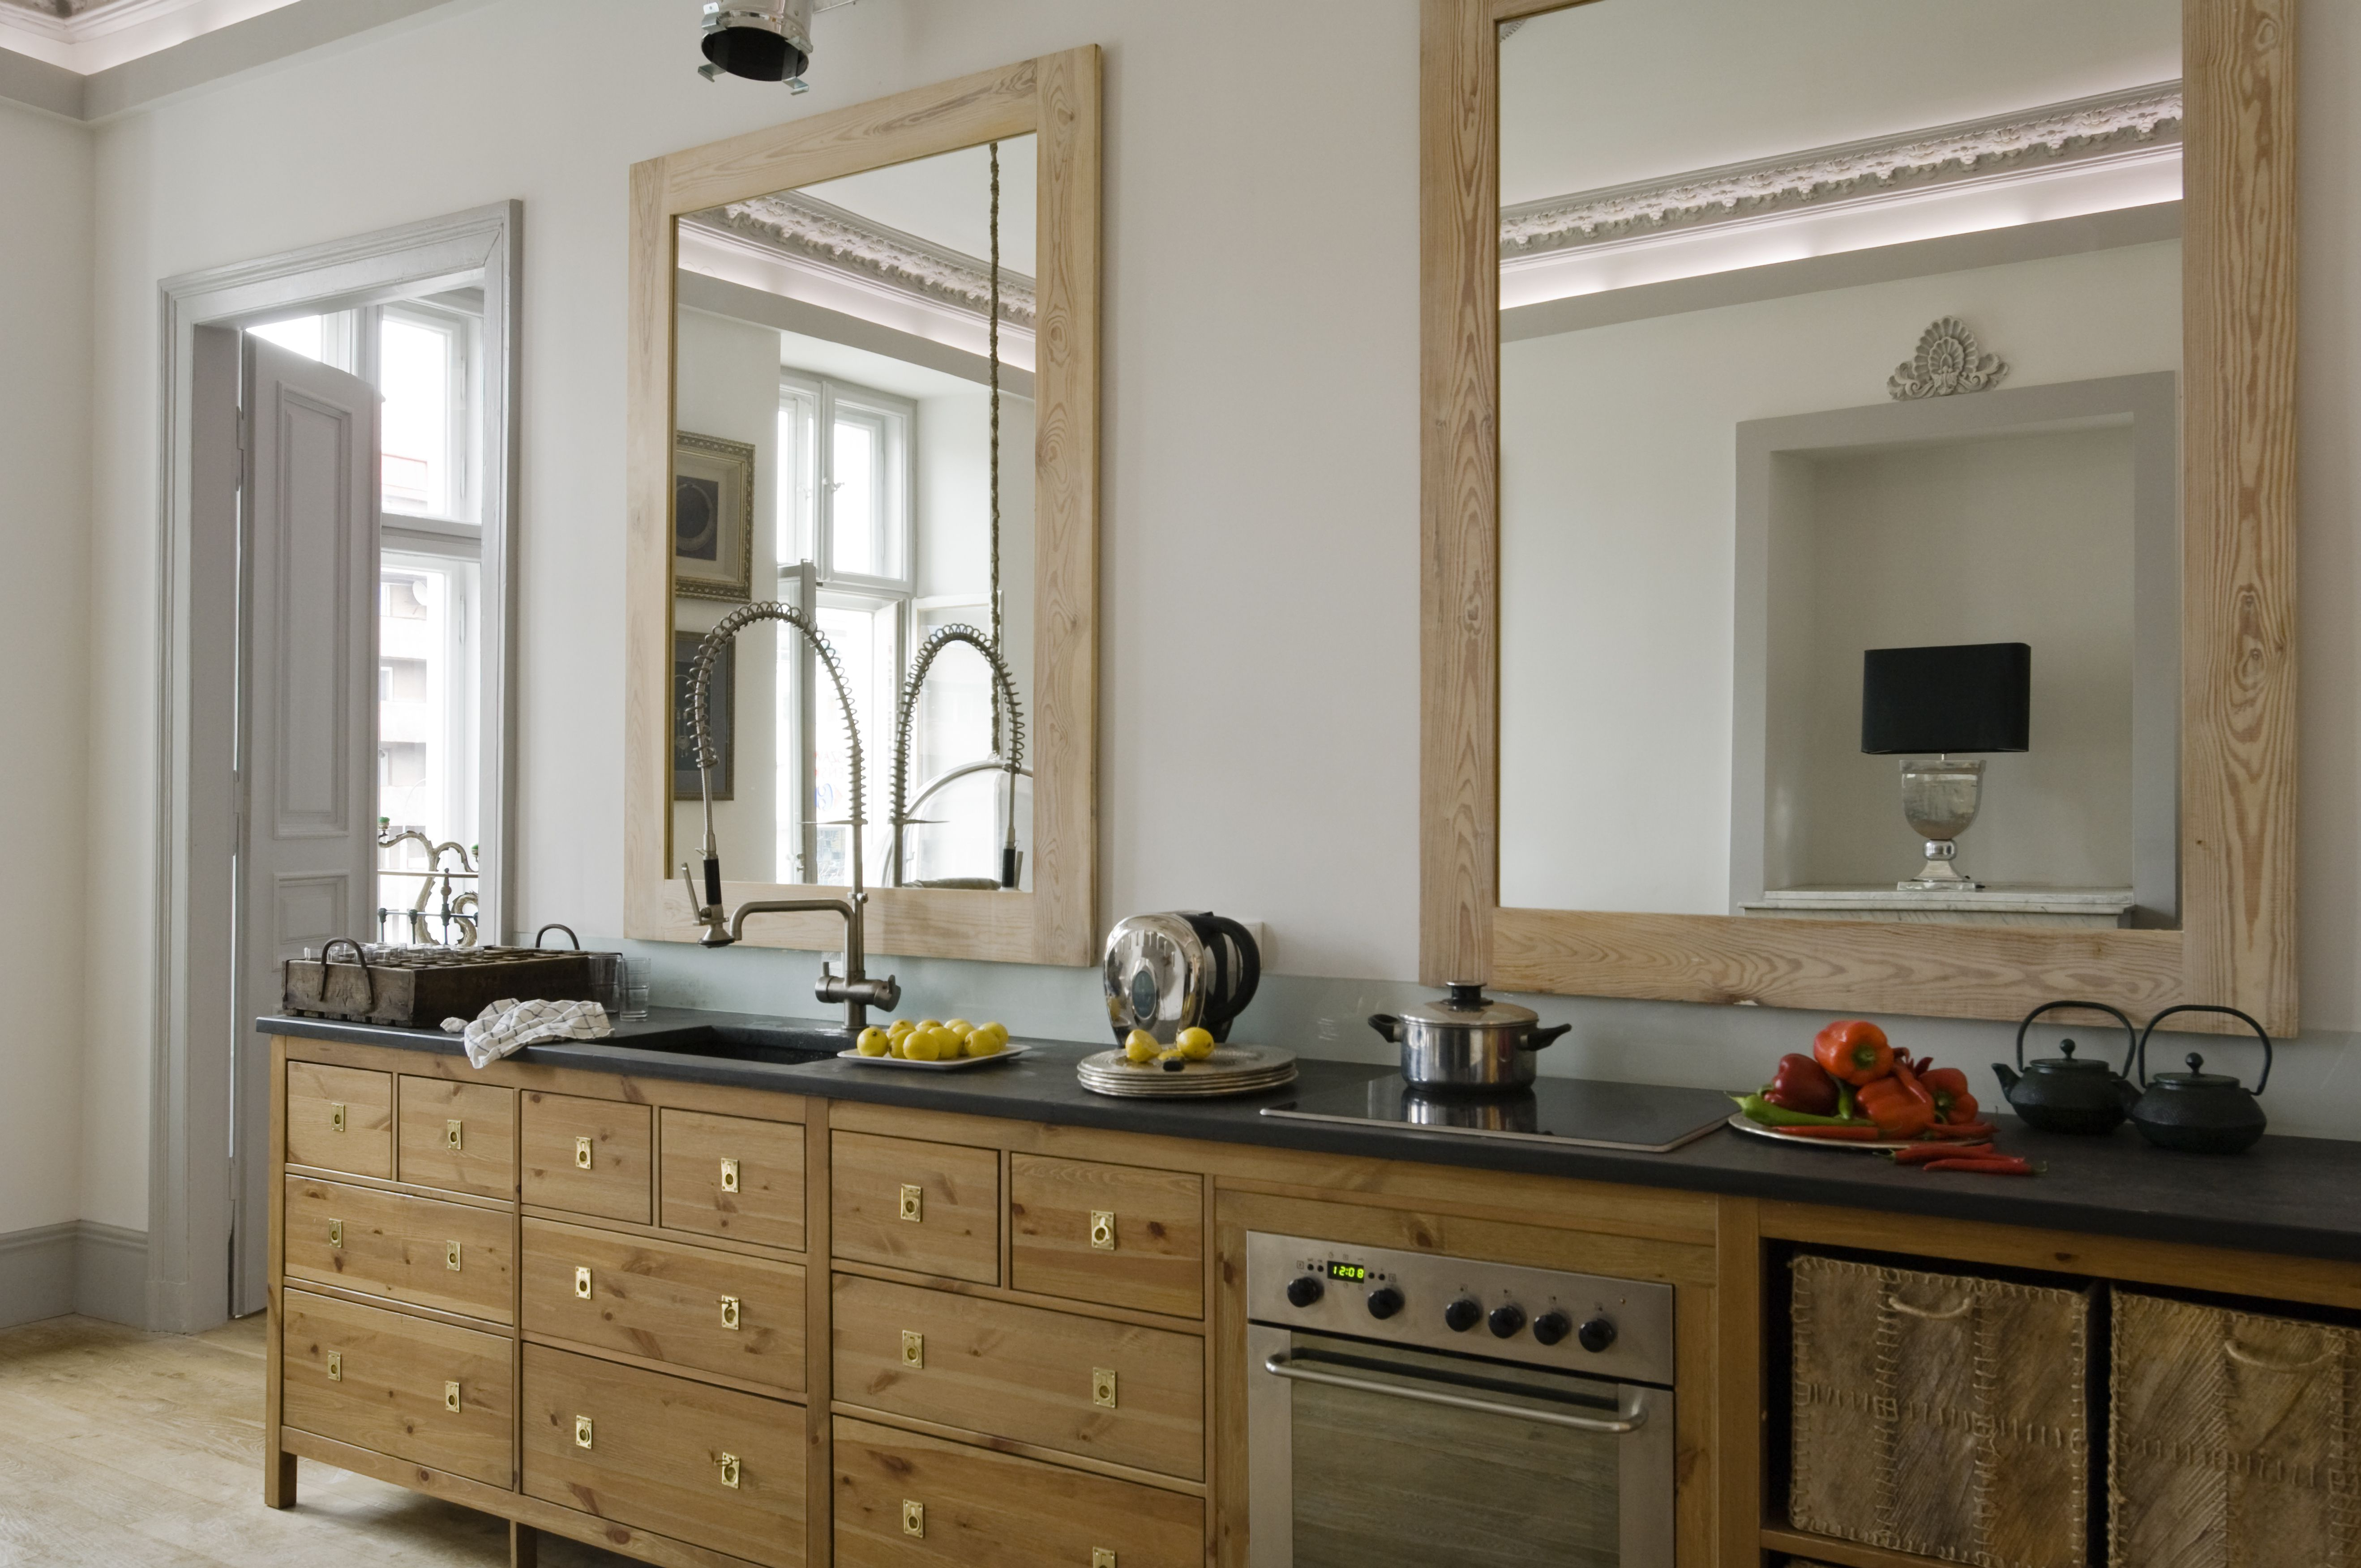 The Feng Shui of a Mirror Behind the Kitchen Stove